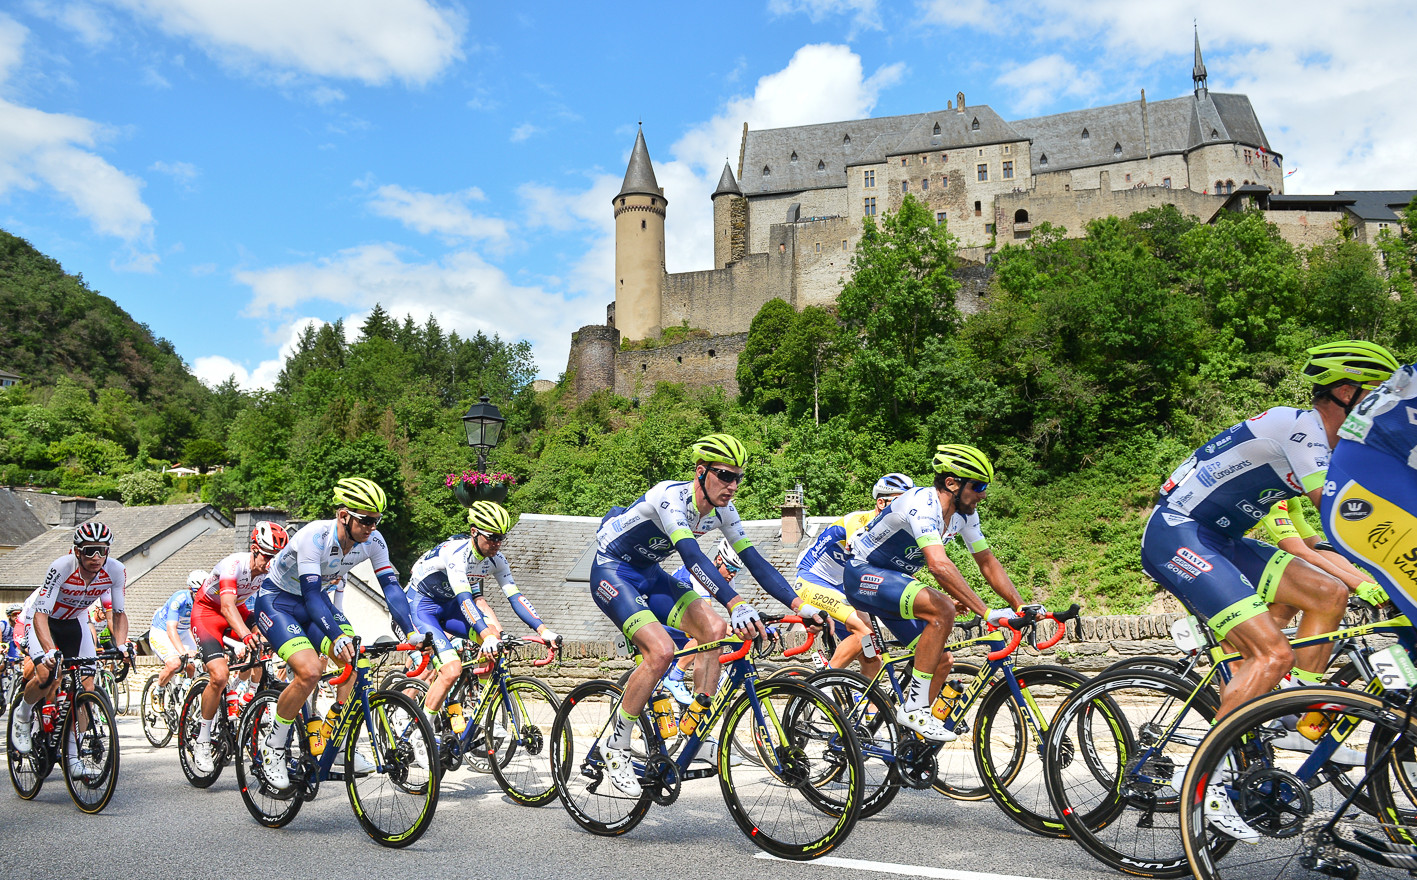 The peloton in front of the medieval castle of Vianden during stage 3 of the Skoda Tour de Luxembourg 2019.